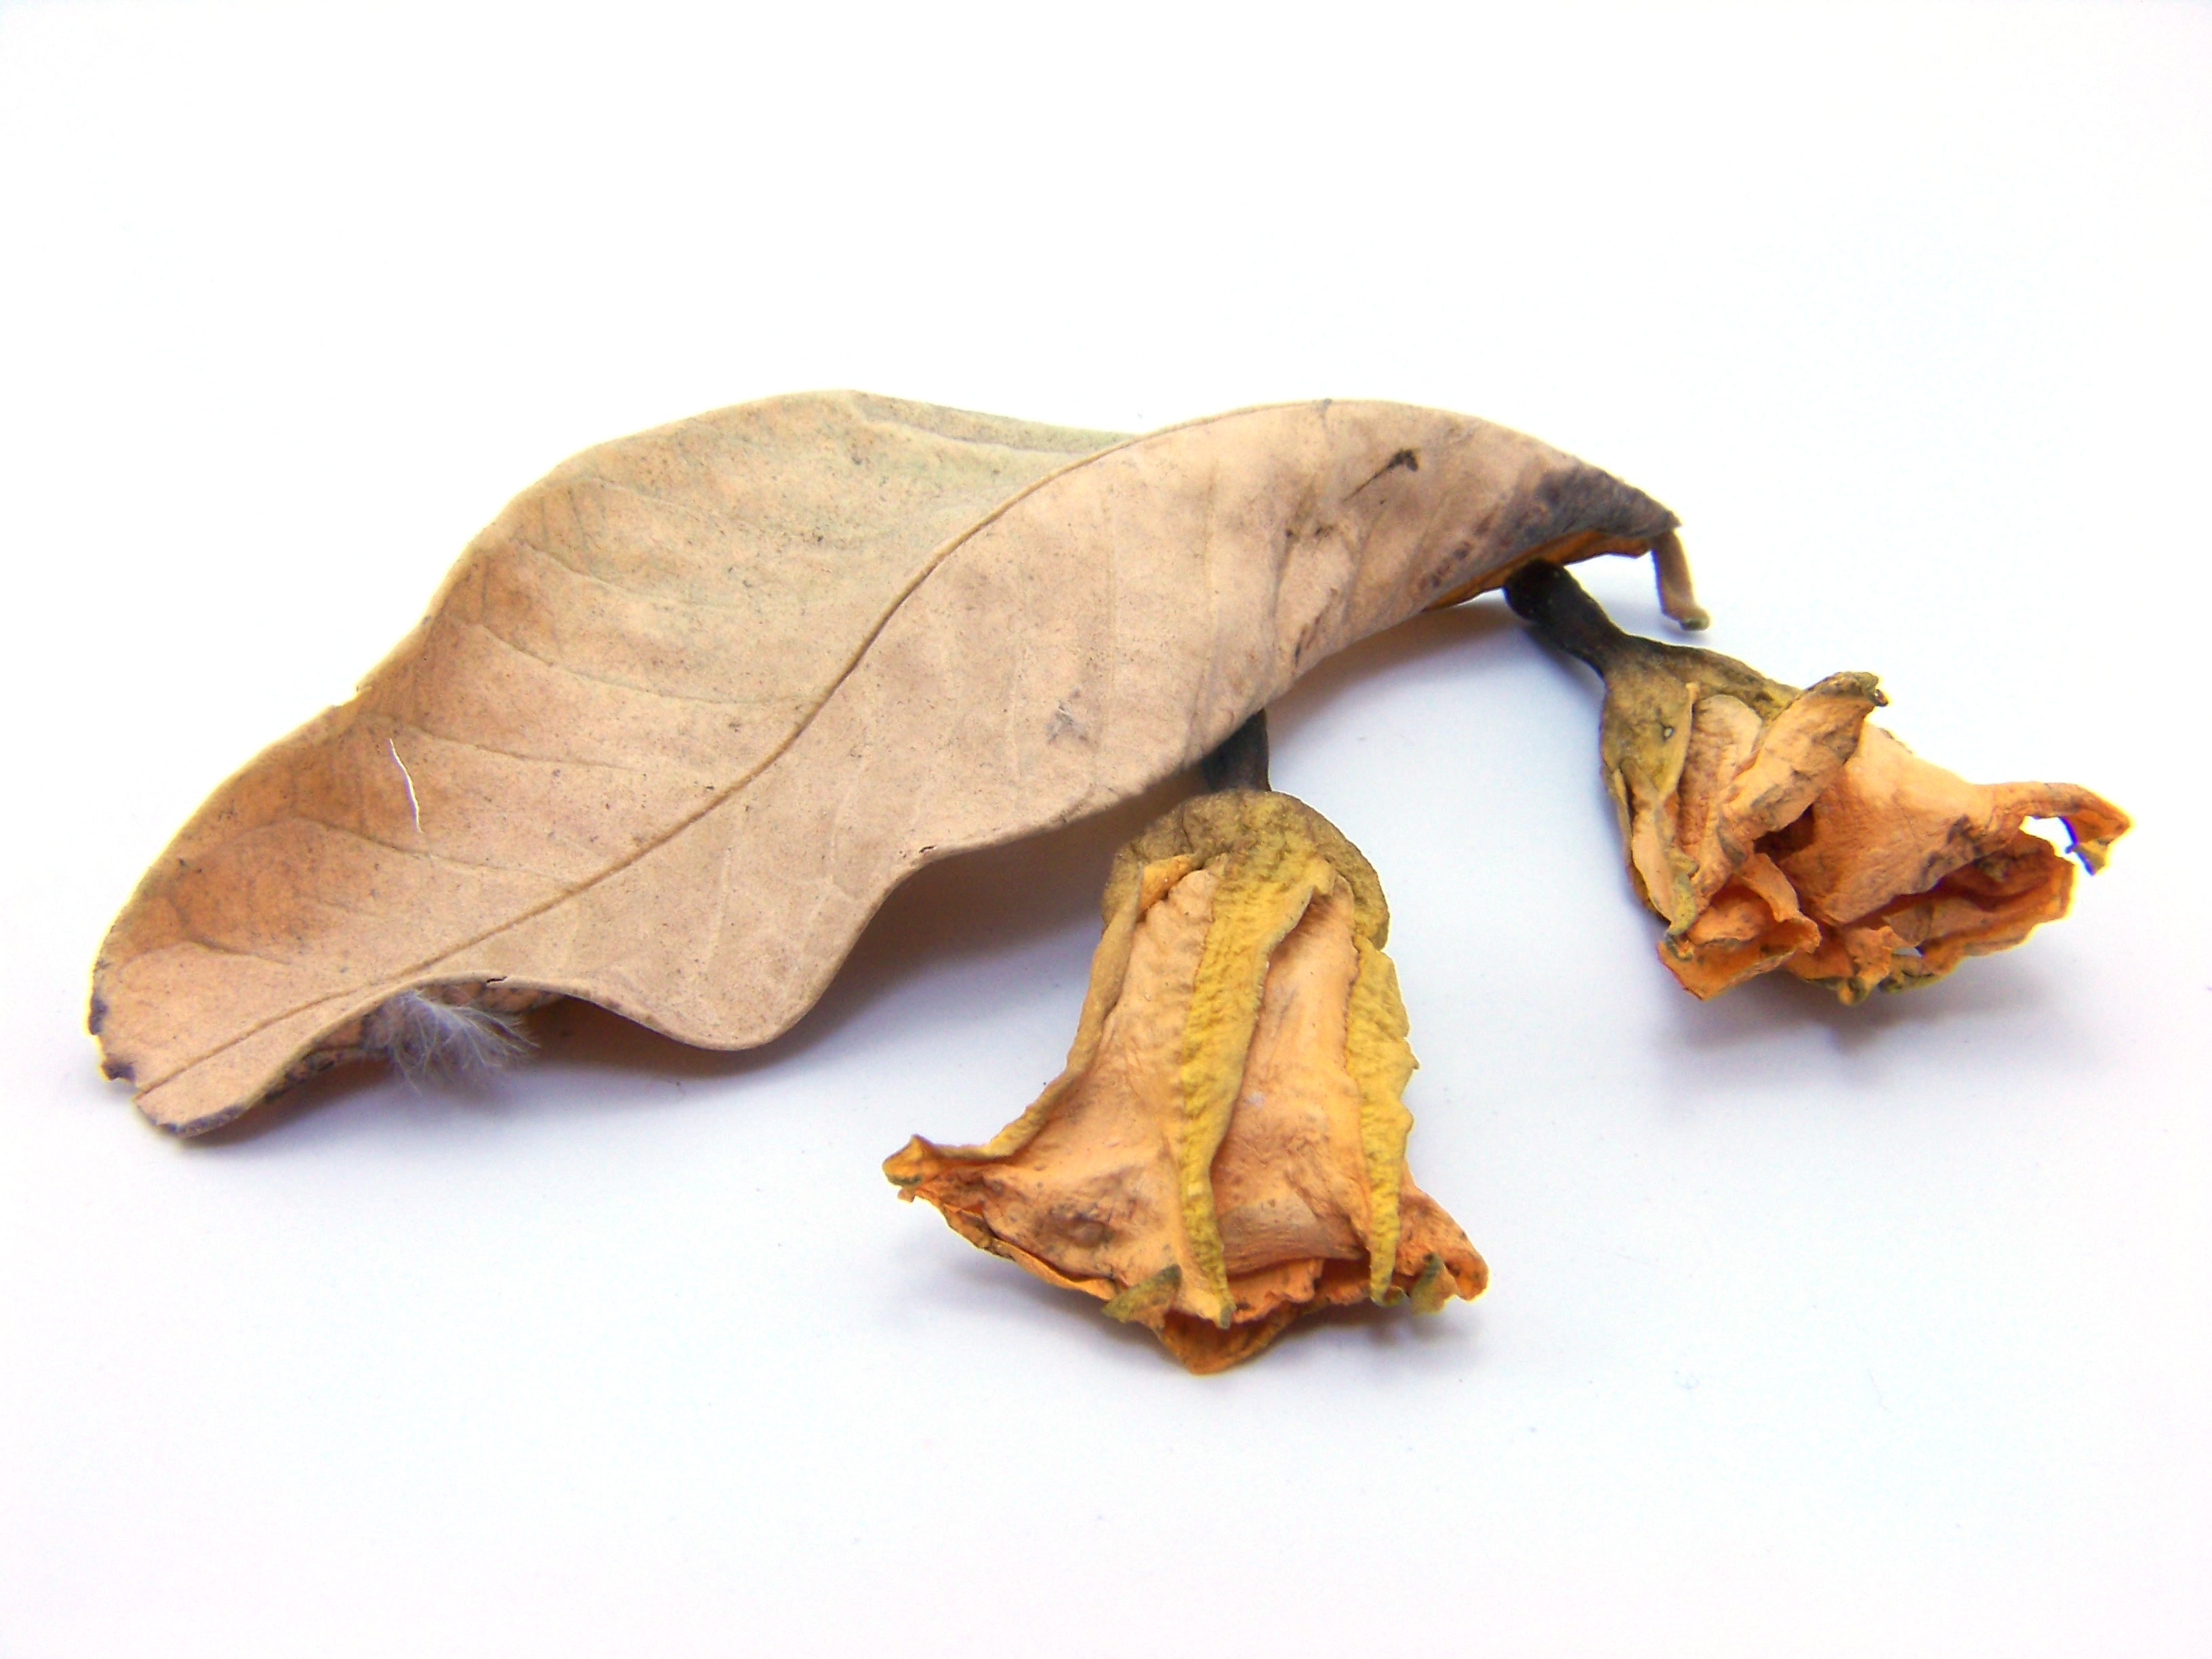 Leafs, Abstract, Season, Nature, Old, HQ Photo